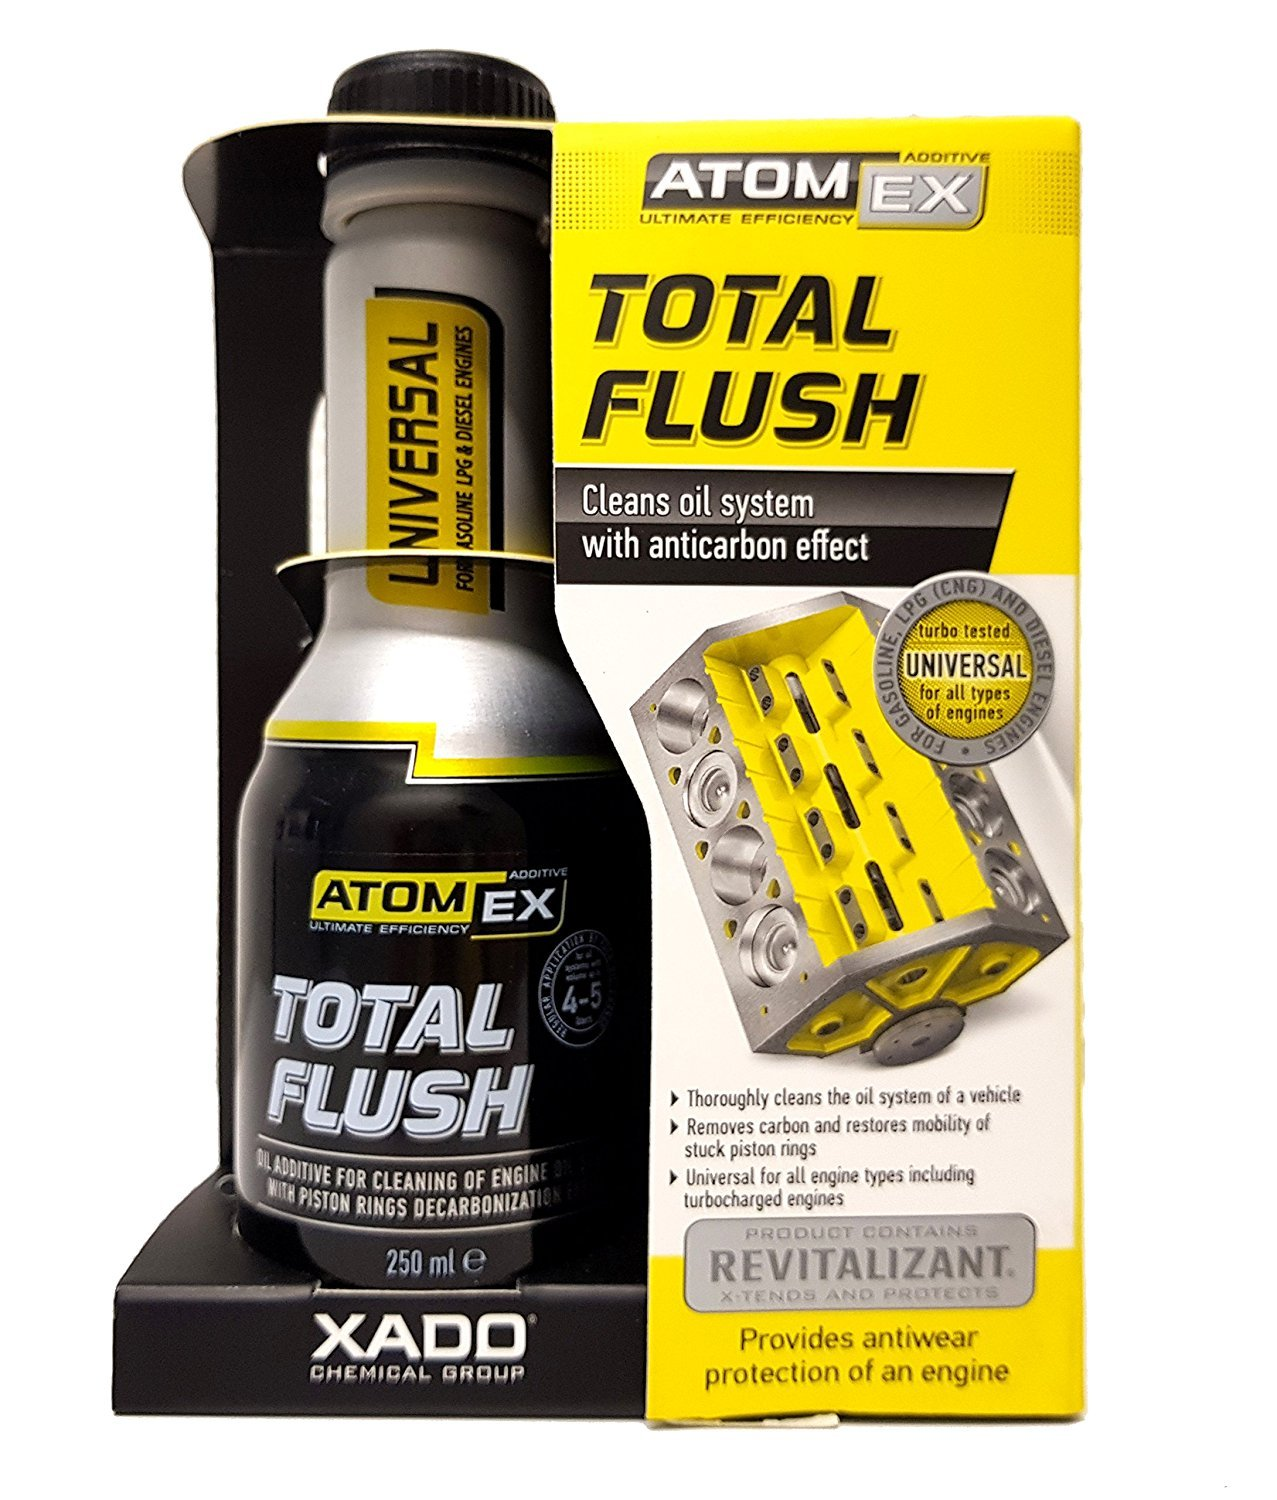 XADO Engine Oil System Cleaner Anti-Carbon Effect - Removes Contamination & Engine Sludge - ATOMEX Total Flush Revitalizant (Bottle, 250ml) XADO Chemical Group XA 40613